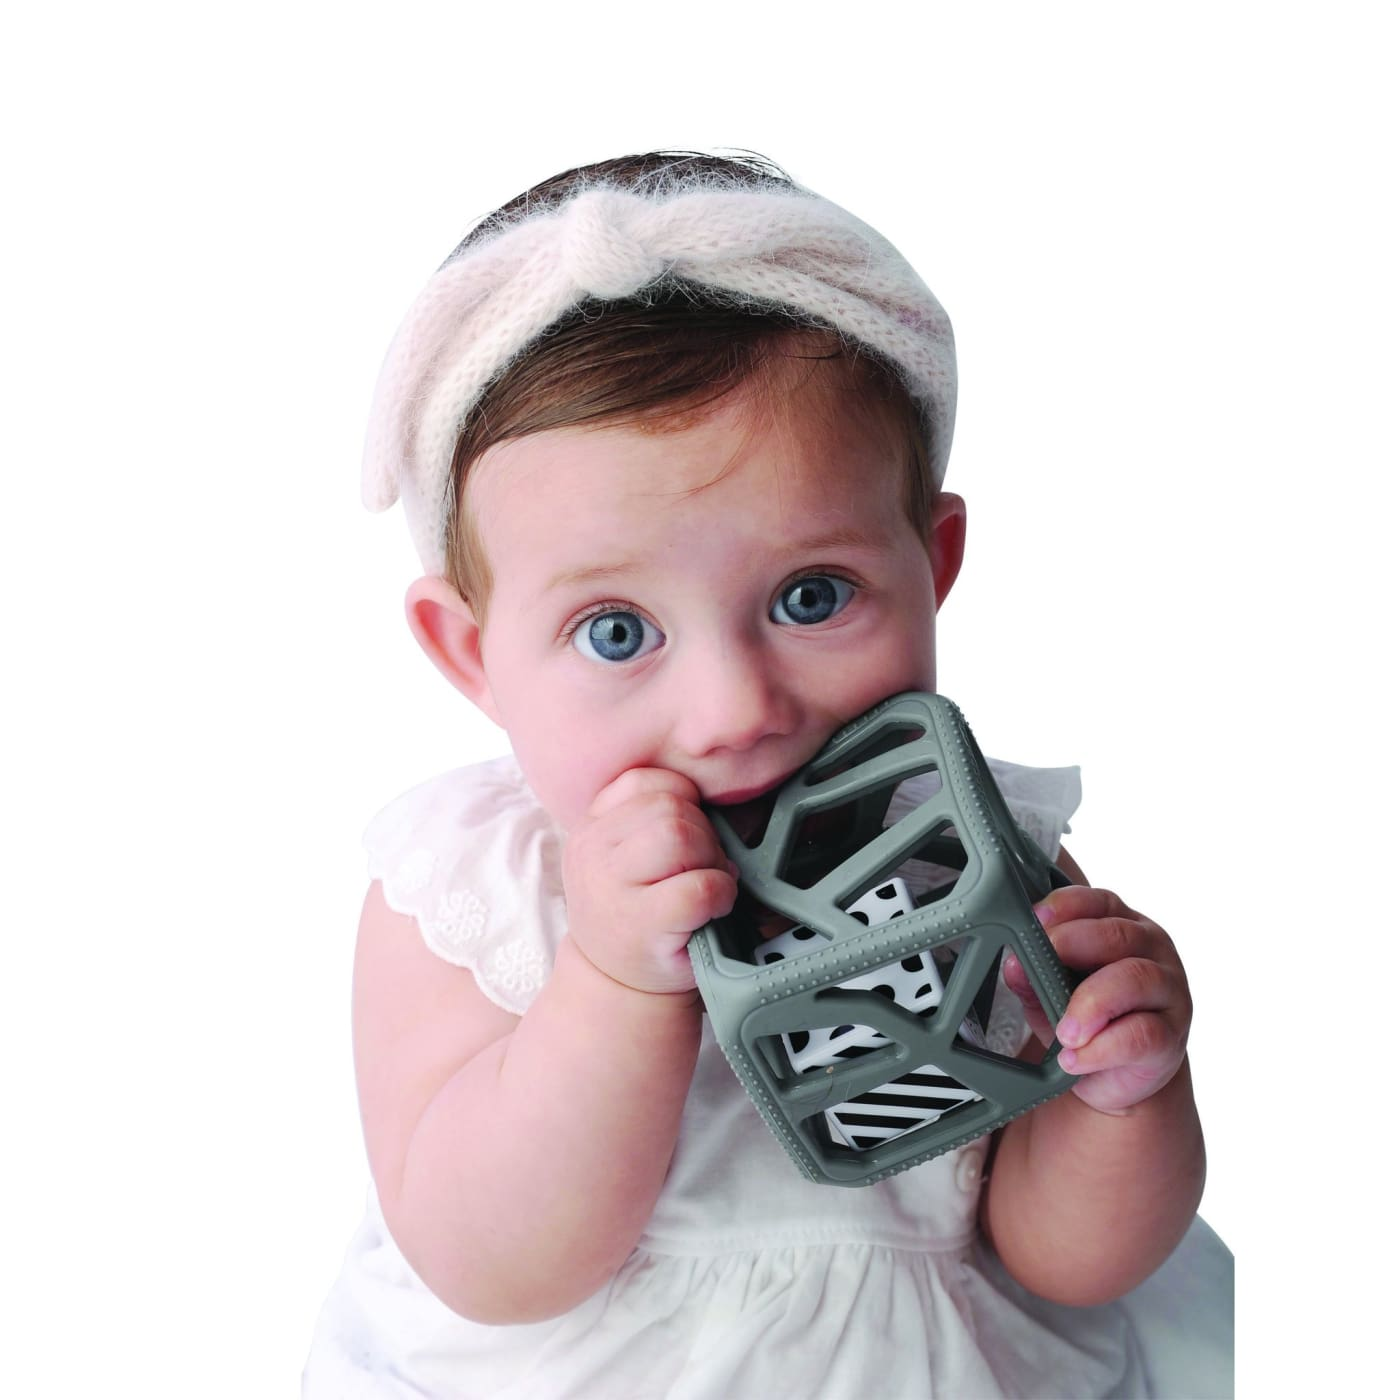 Malarkey Kids Chew Cube - Grey - NURSING & FEEDING - TEETHERS/TEETHING JEWELLERY